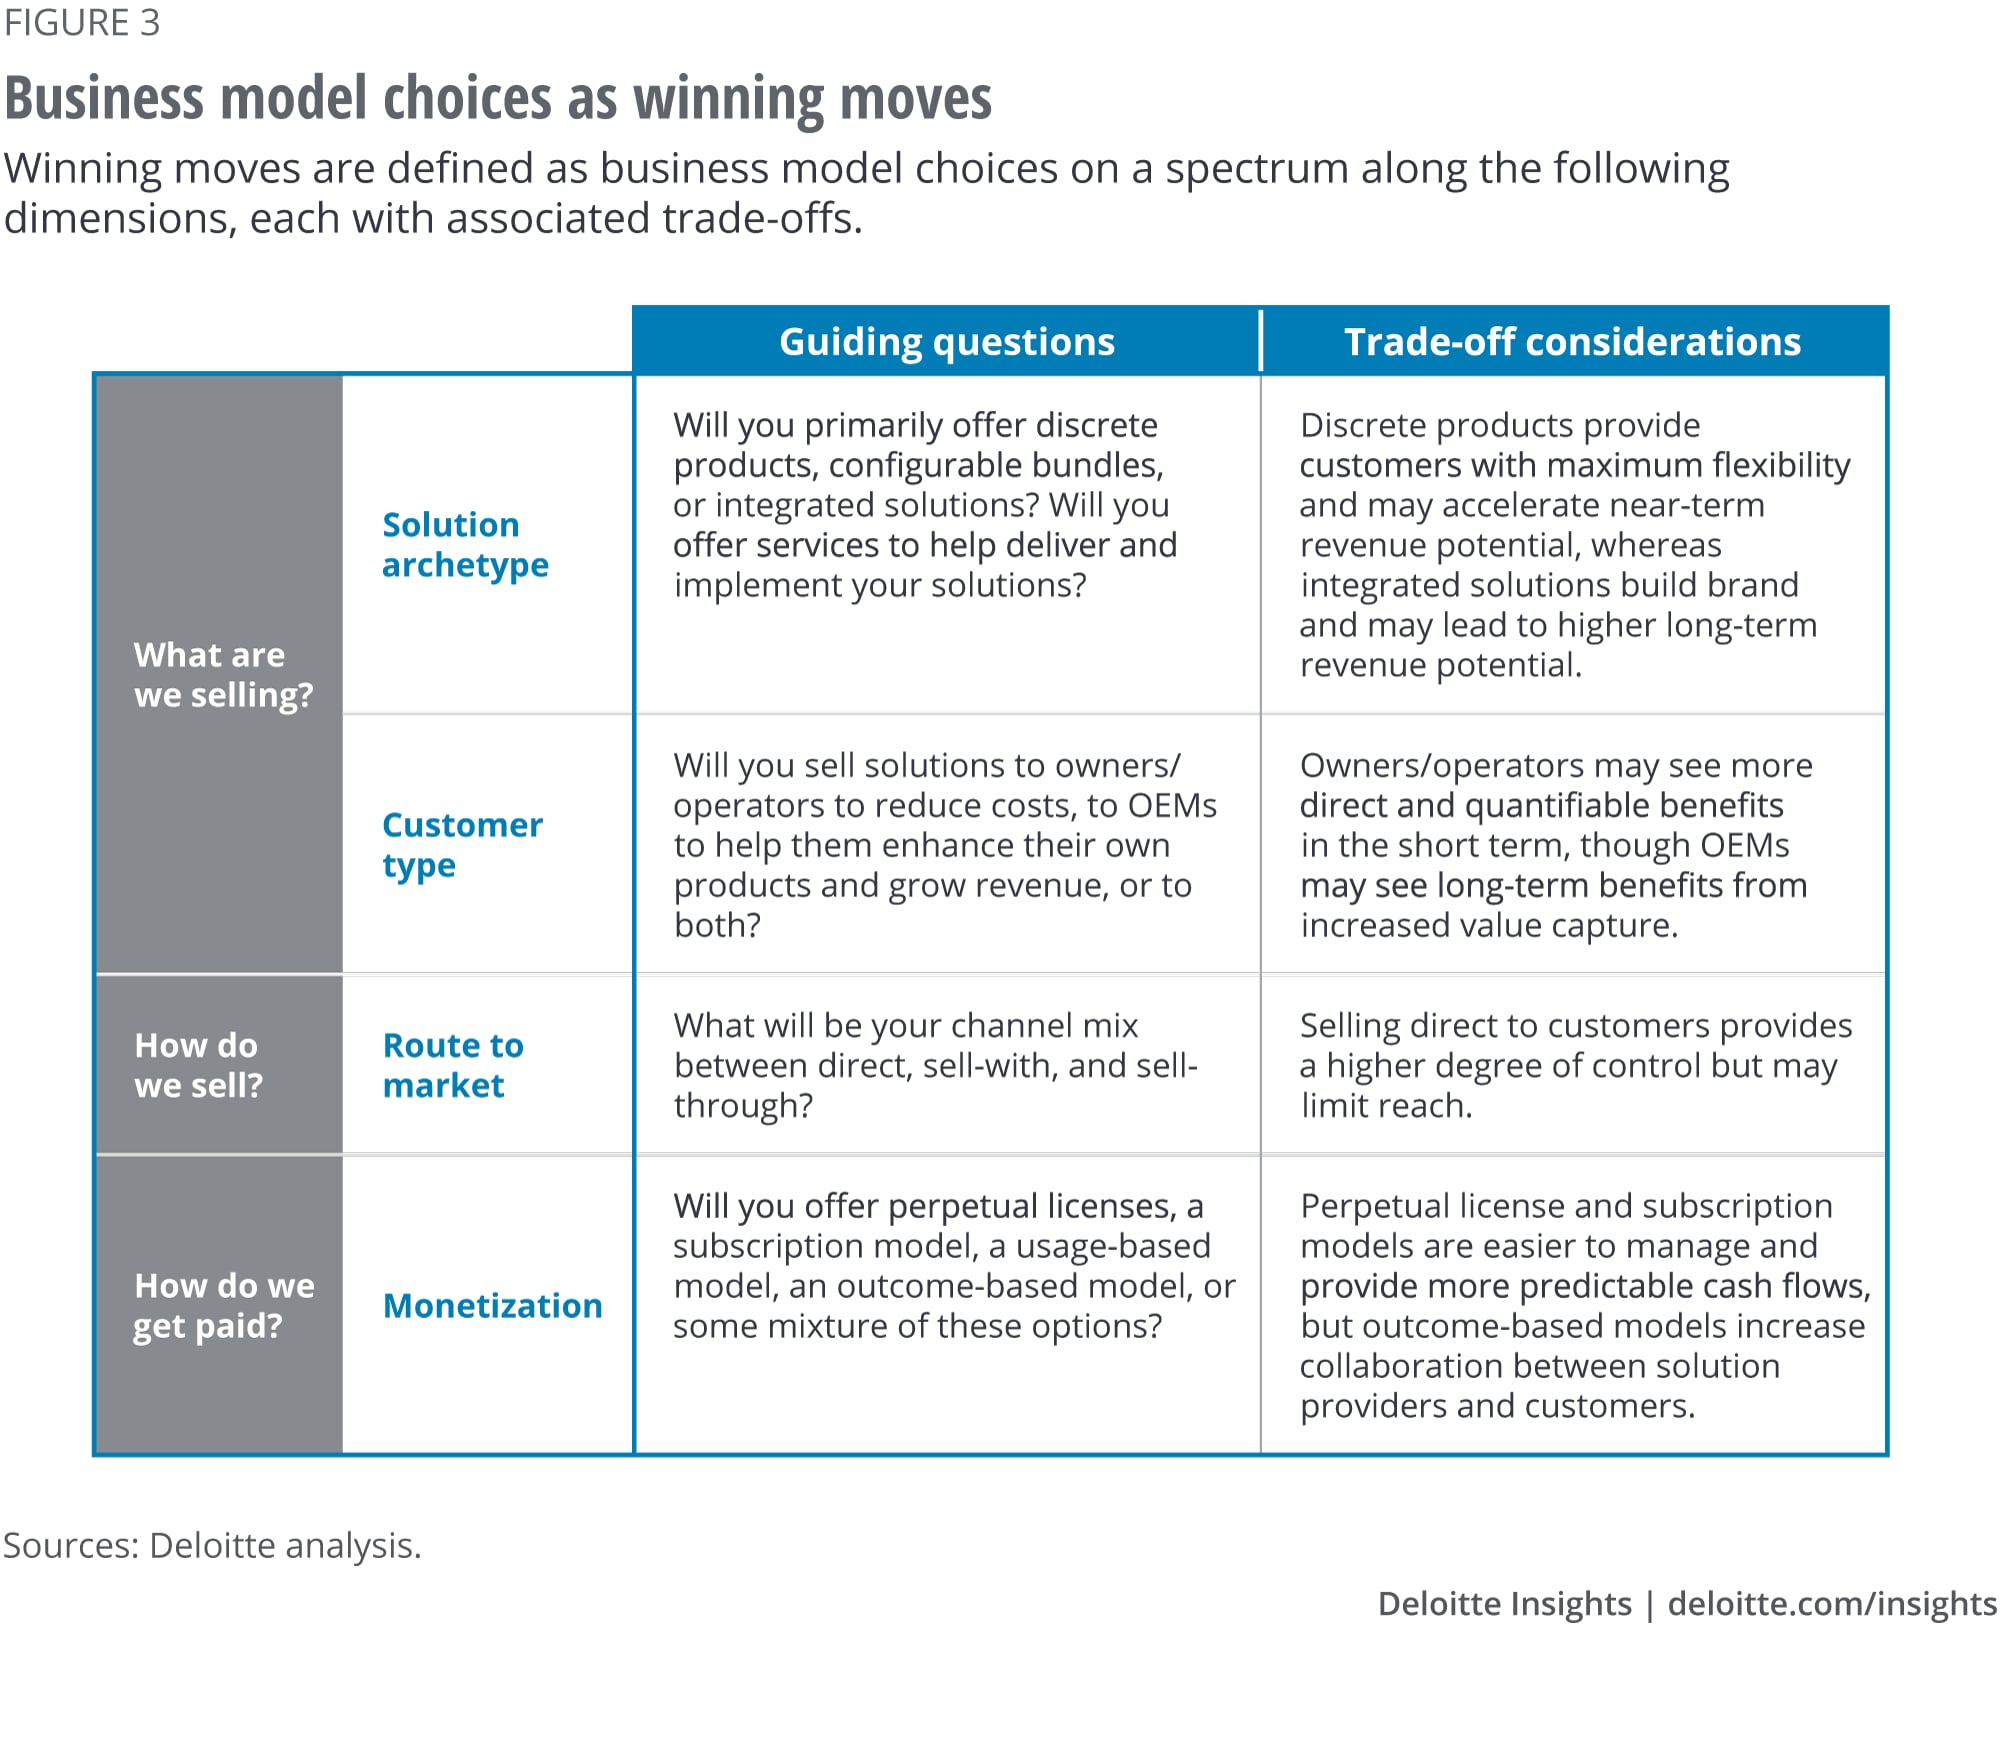 Business model choices as winning moves